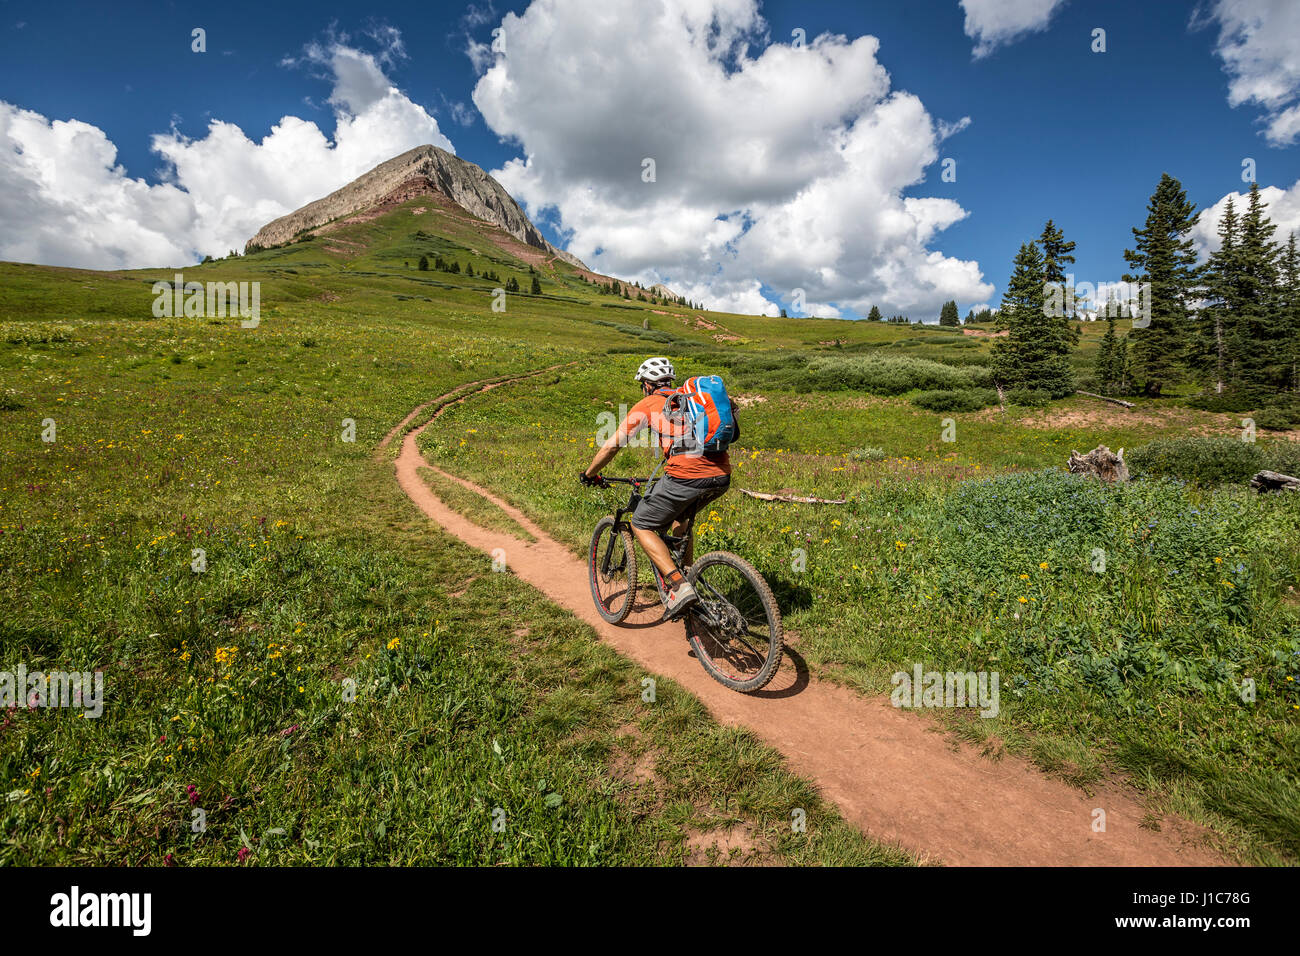 Eric Odenthal mountain biking up the Pass trail towards Engineer Mountain, Colorado. - Stock Image